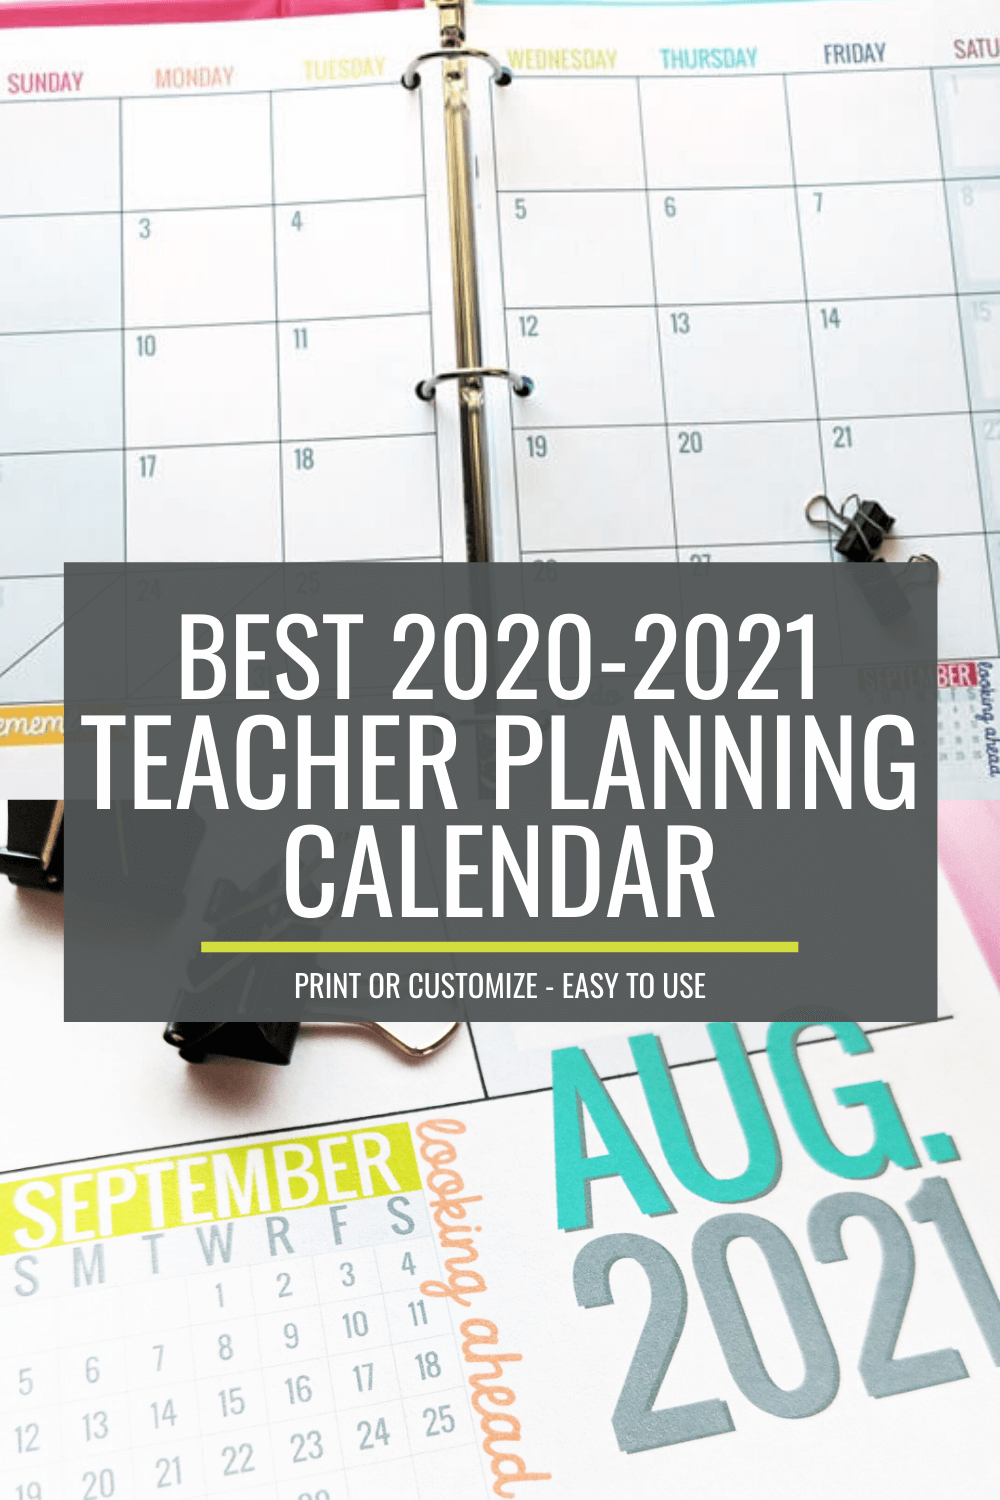 2020-2021 Teacher Planning Calendar Template